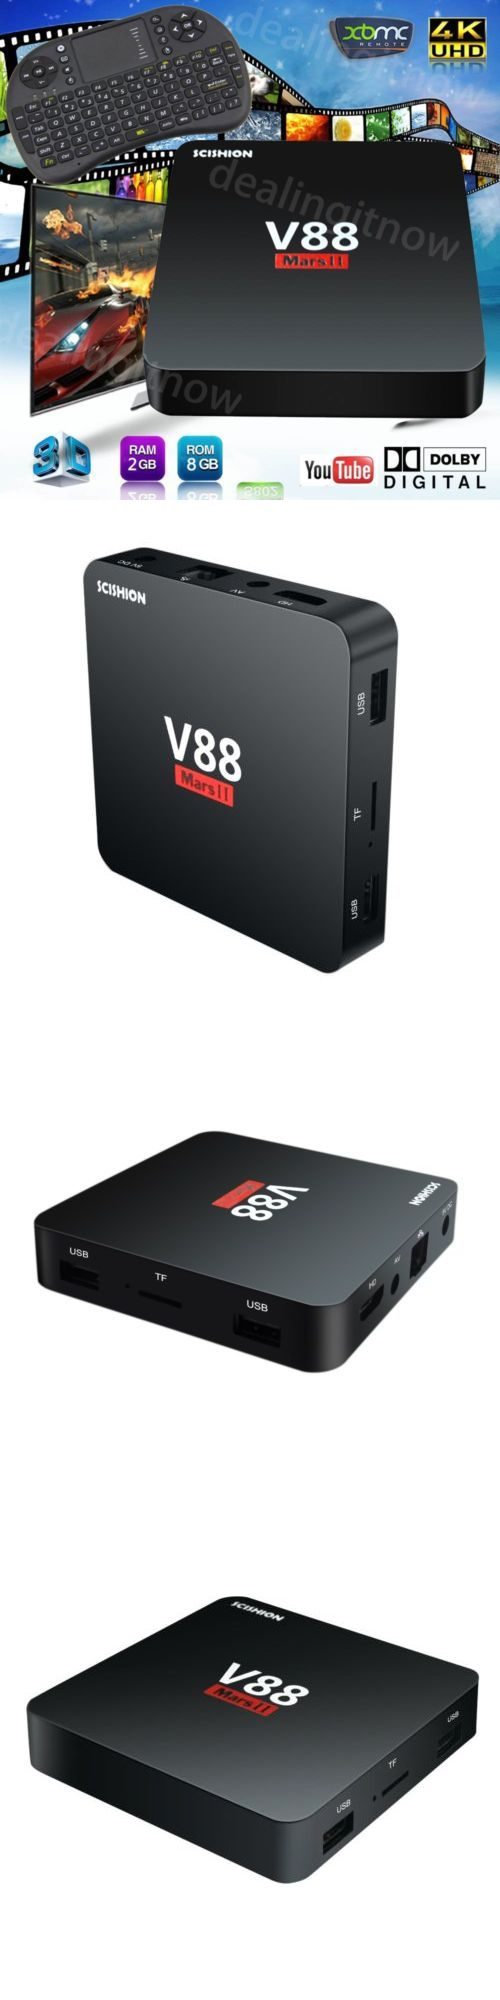 Cable TV Boxes: Mini V88mars Ii Rk3229 2G+8G 2.4Wifi 4K*2K Hd Smart Tv Box Android 6.0+Keyboard -> BUY IT NOW ONLY: $41.99 on eBay!